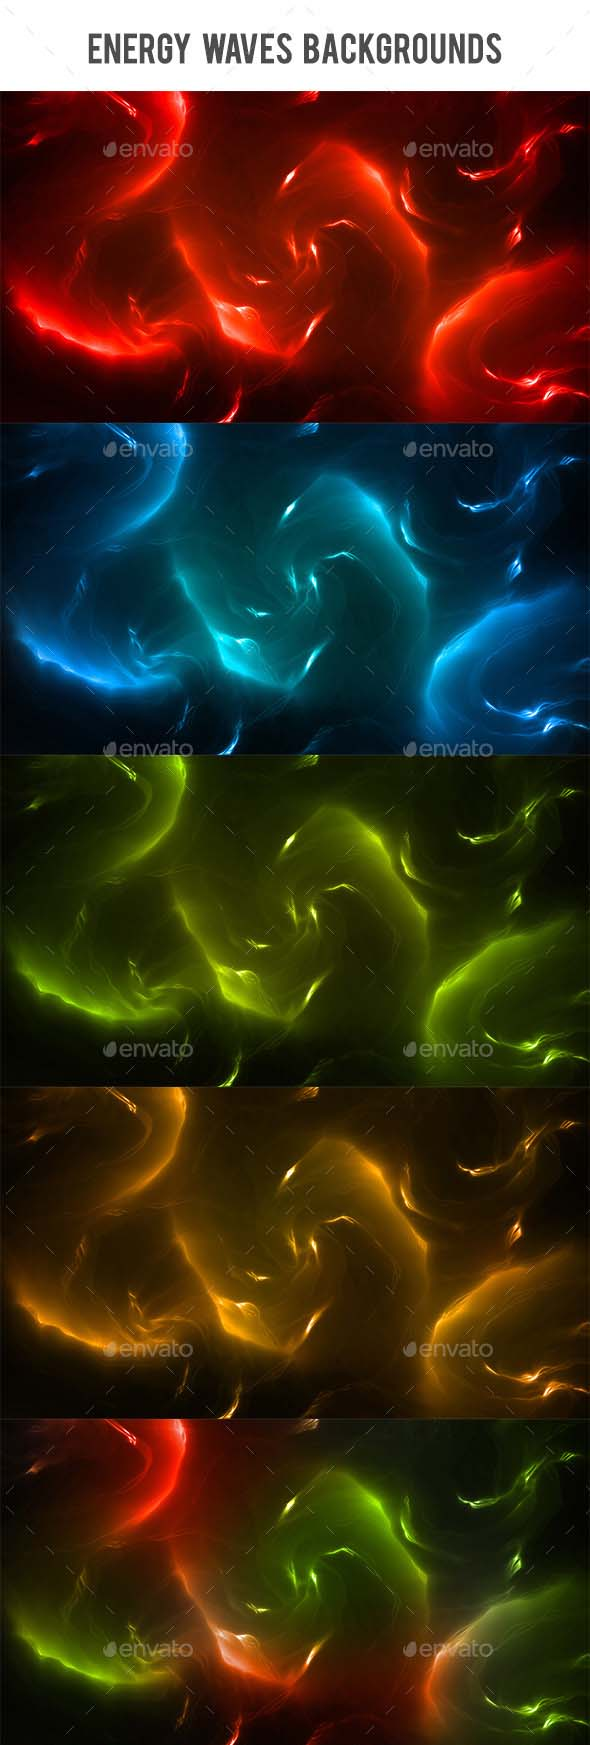 Energy Waves Backgrounds